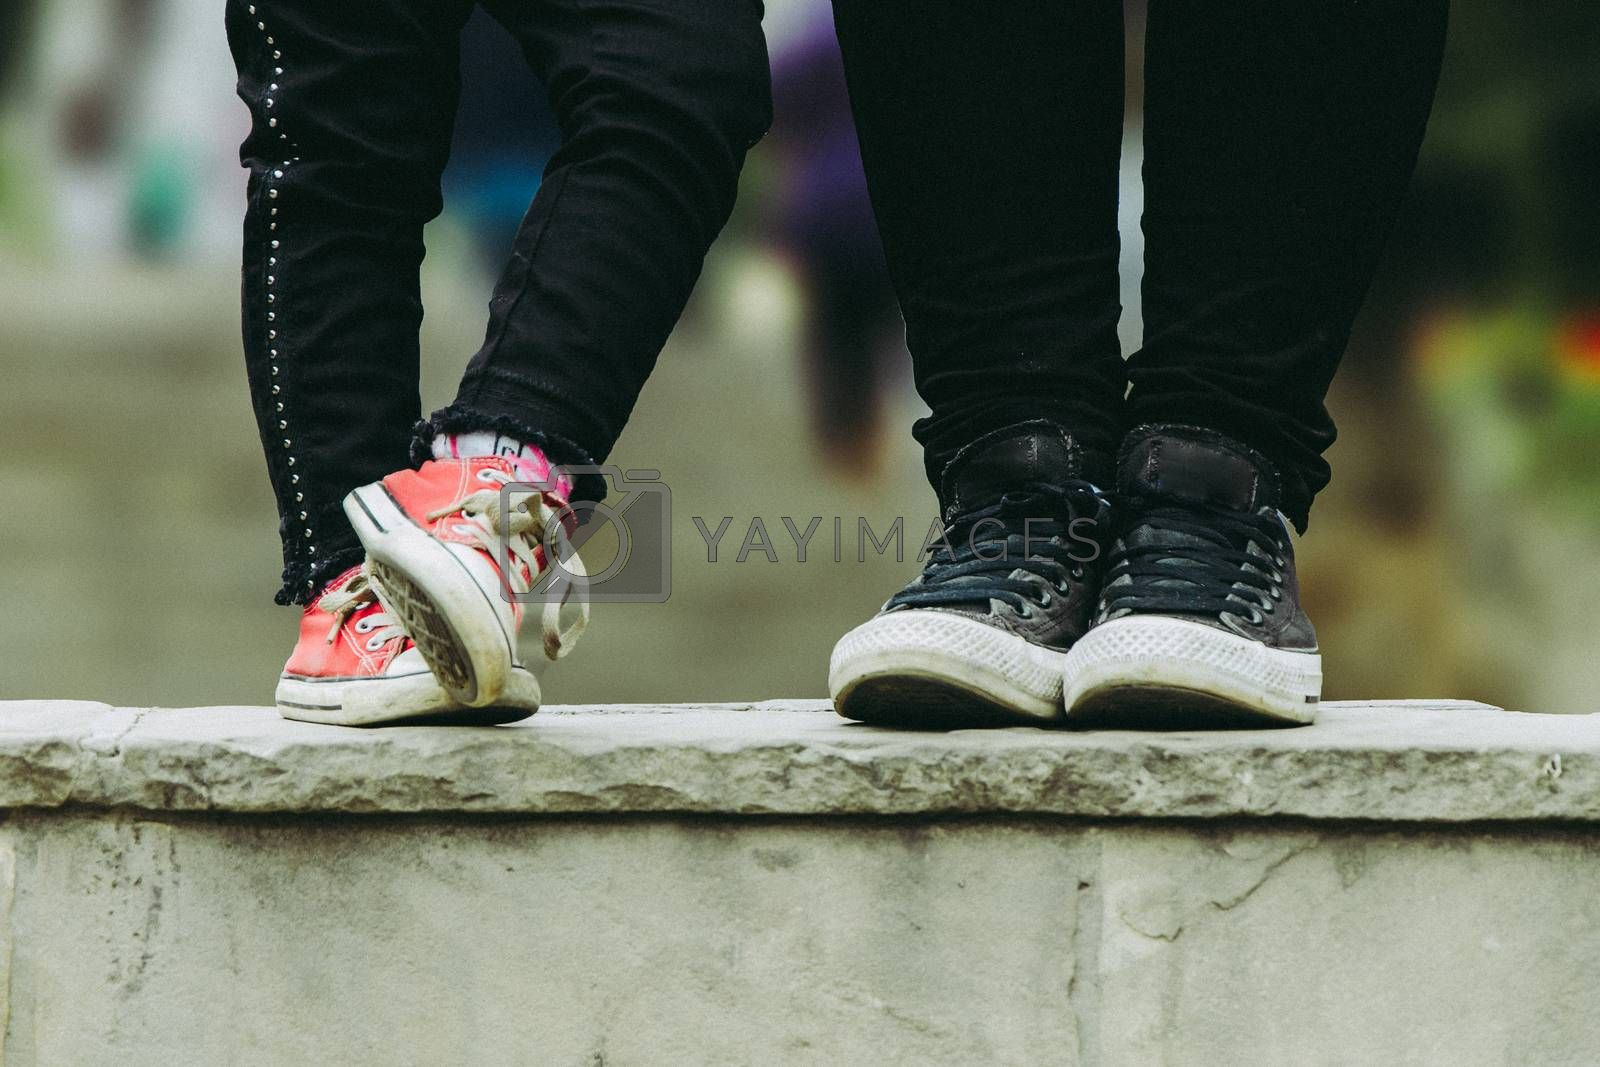 Cropped image of mother and daughter, mom and daughter slippers